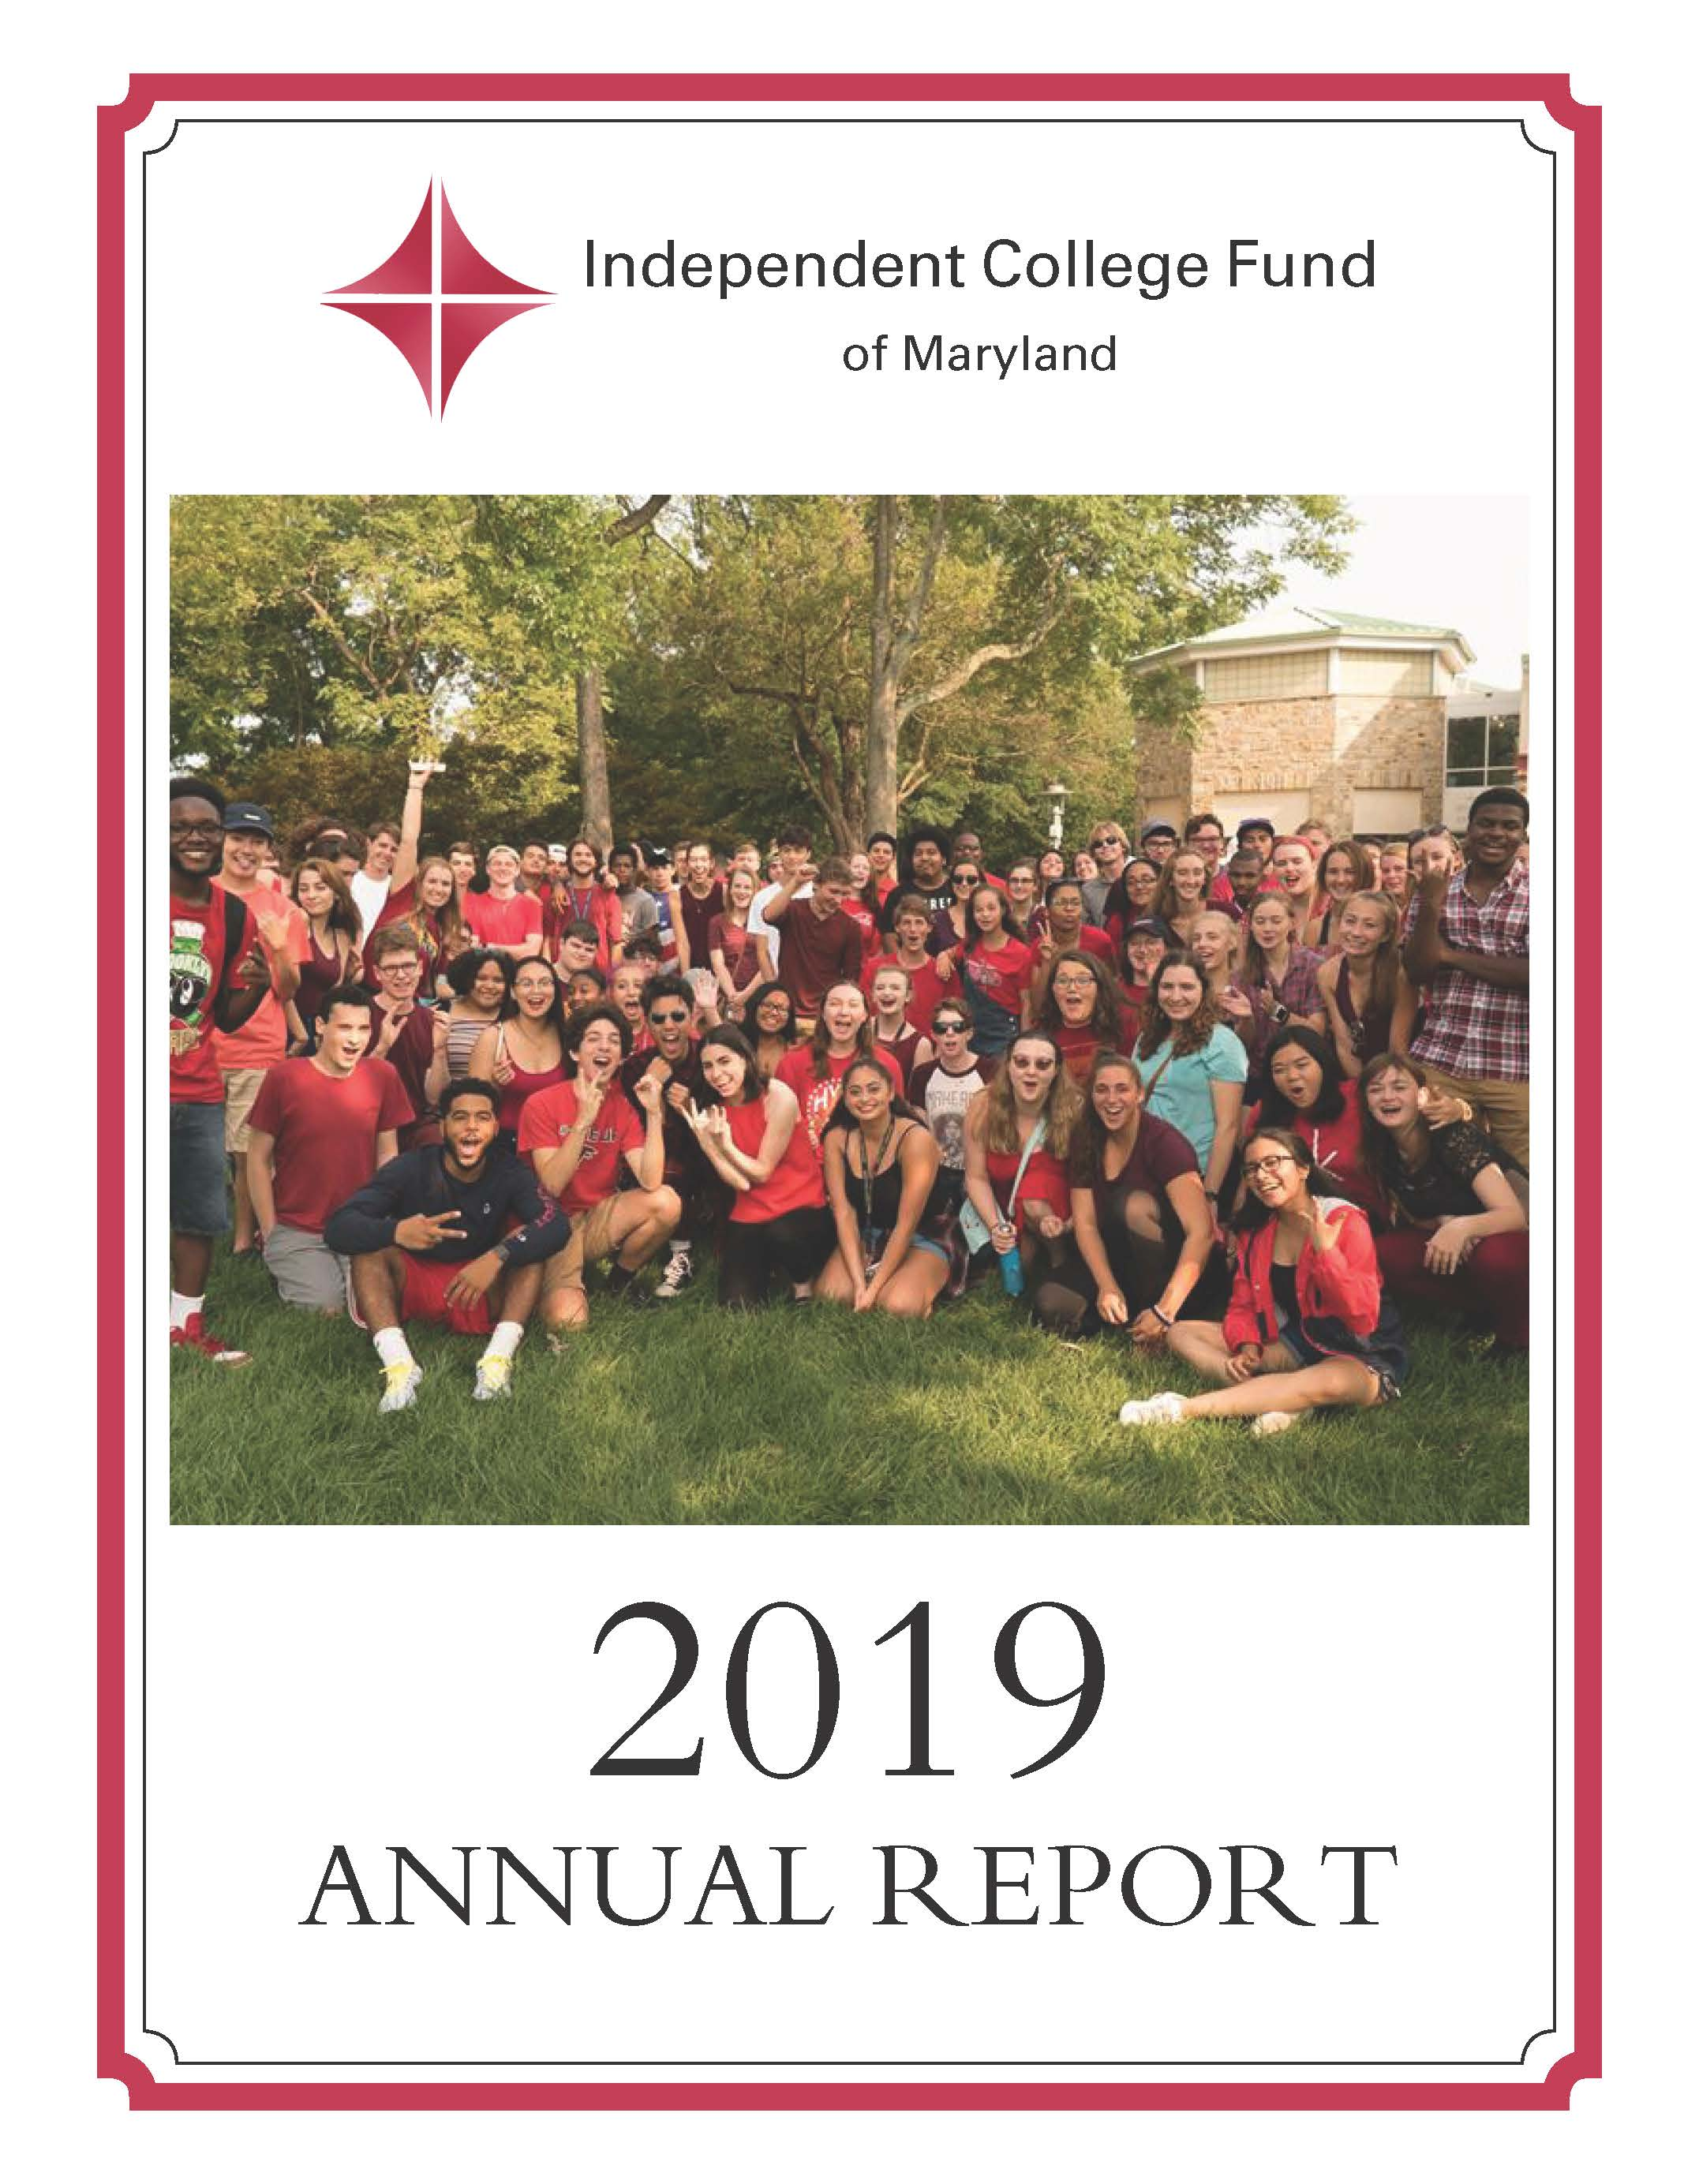 2019 Ifund annual report cover